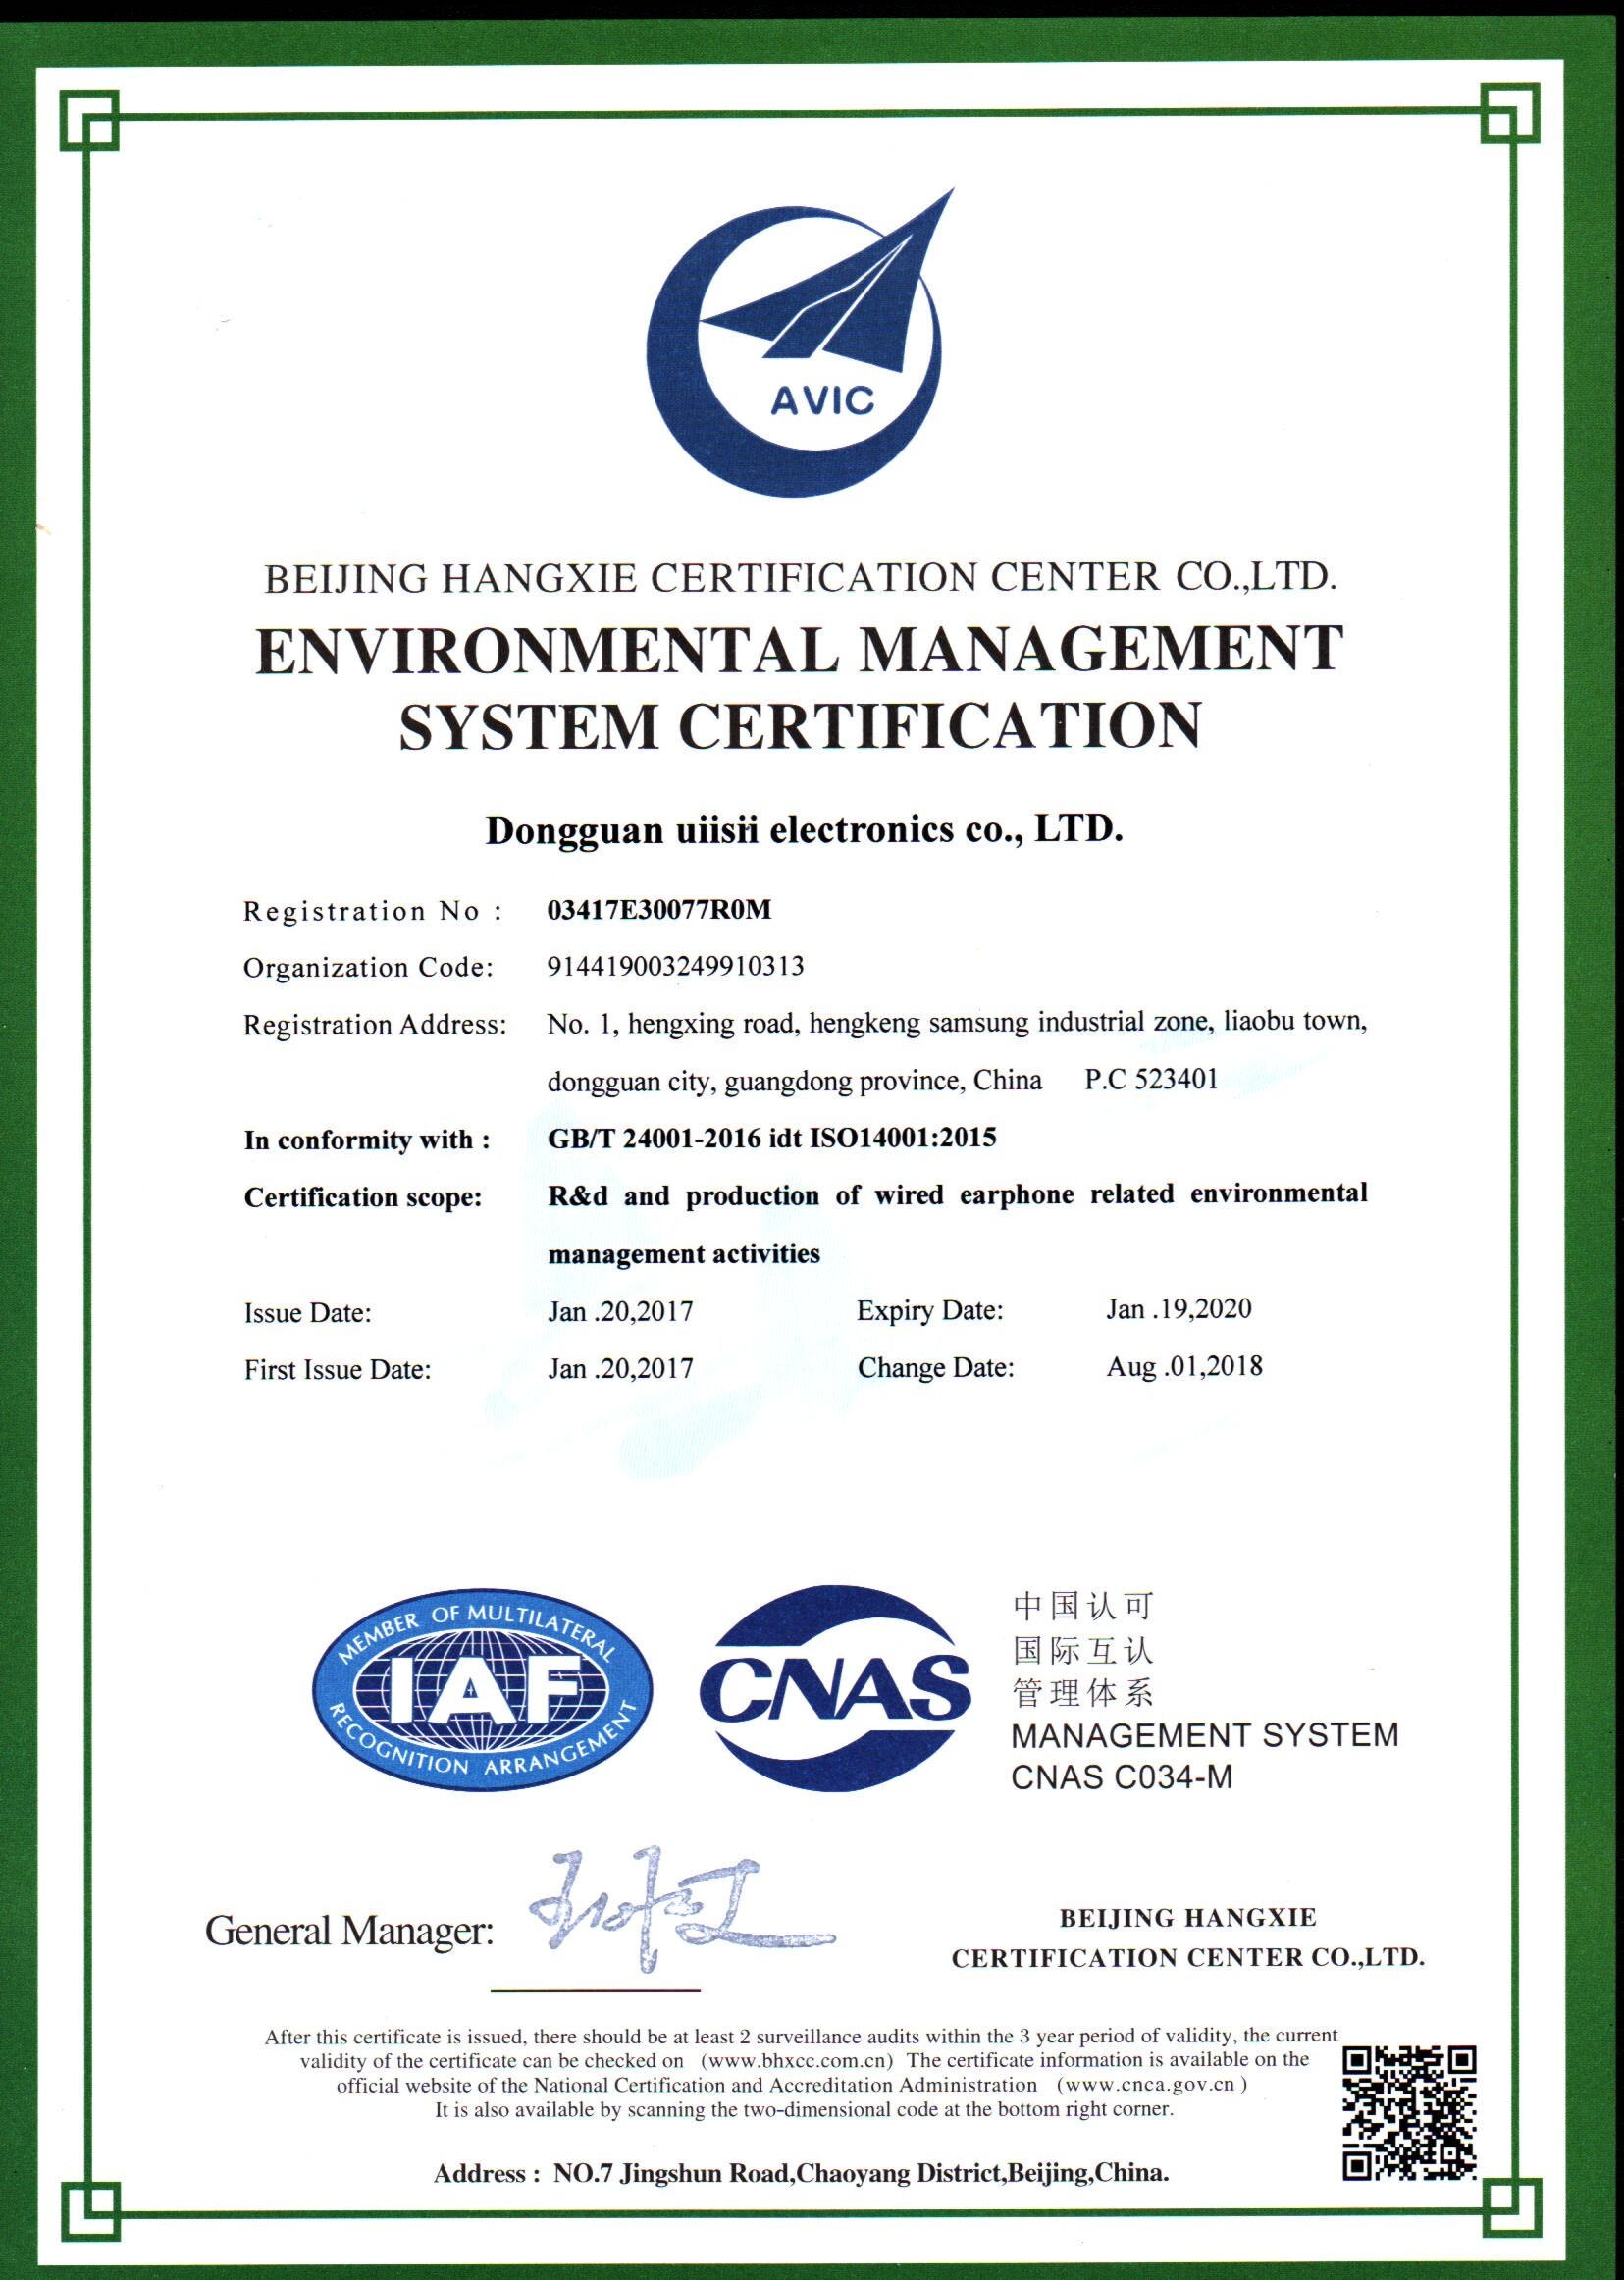 Environment management system